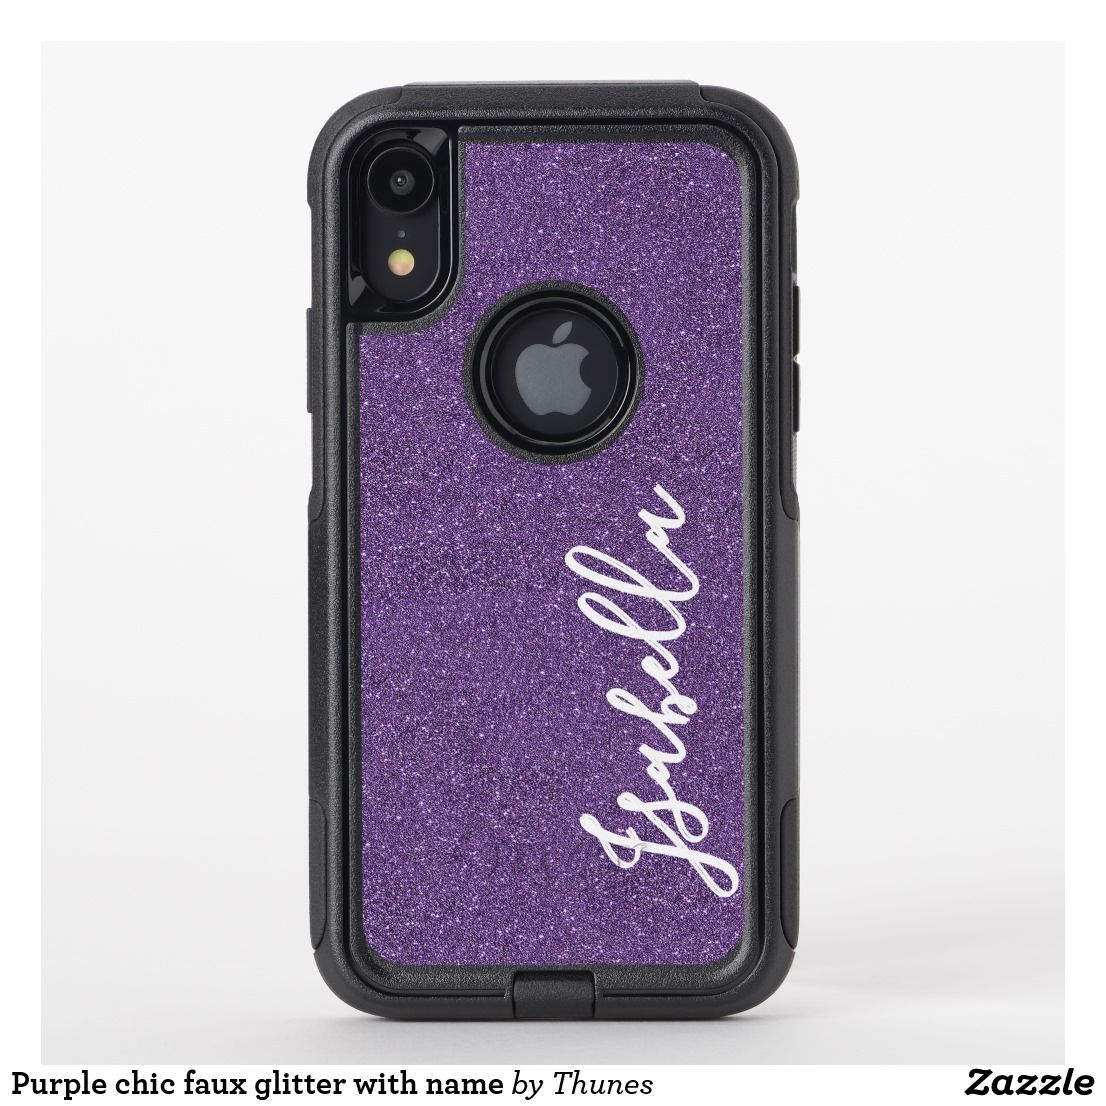 Purple chic faux glitter with name OtterBox iPhone case